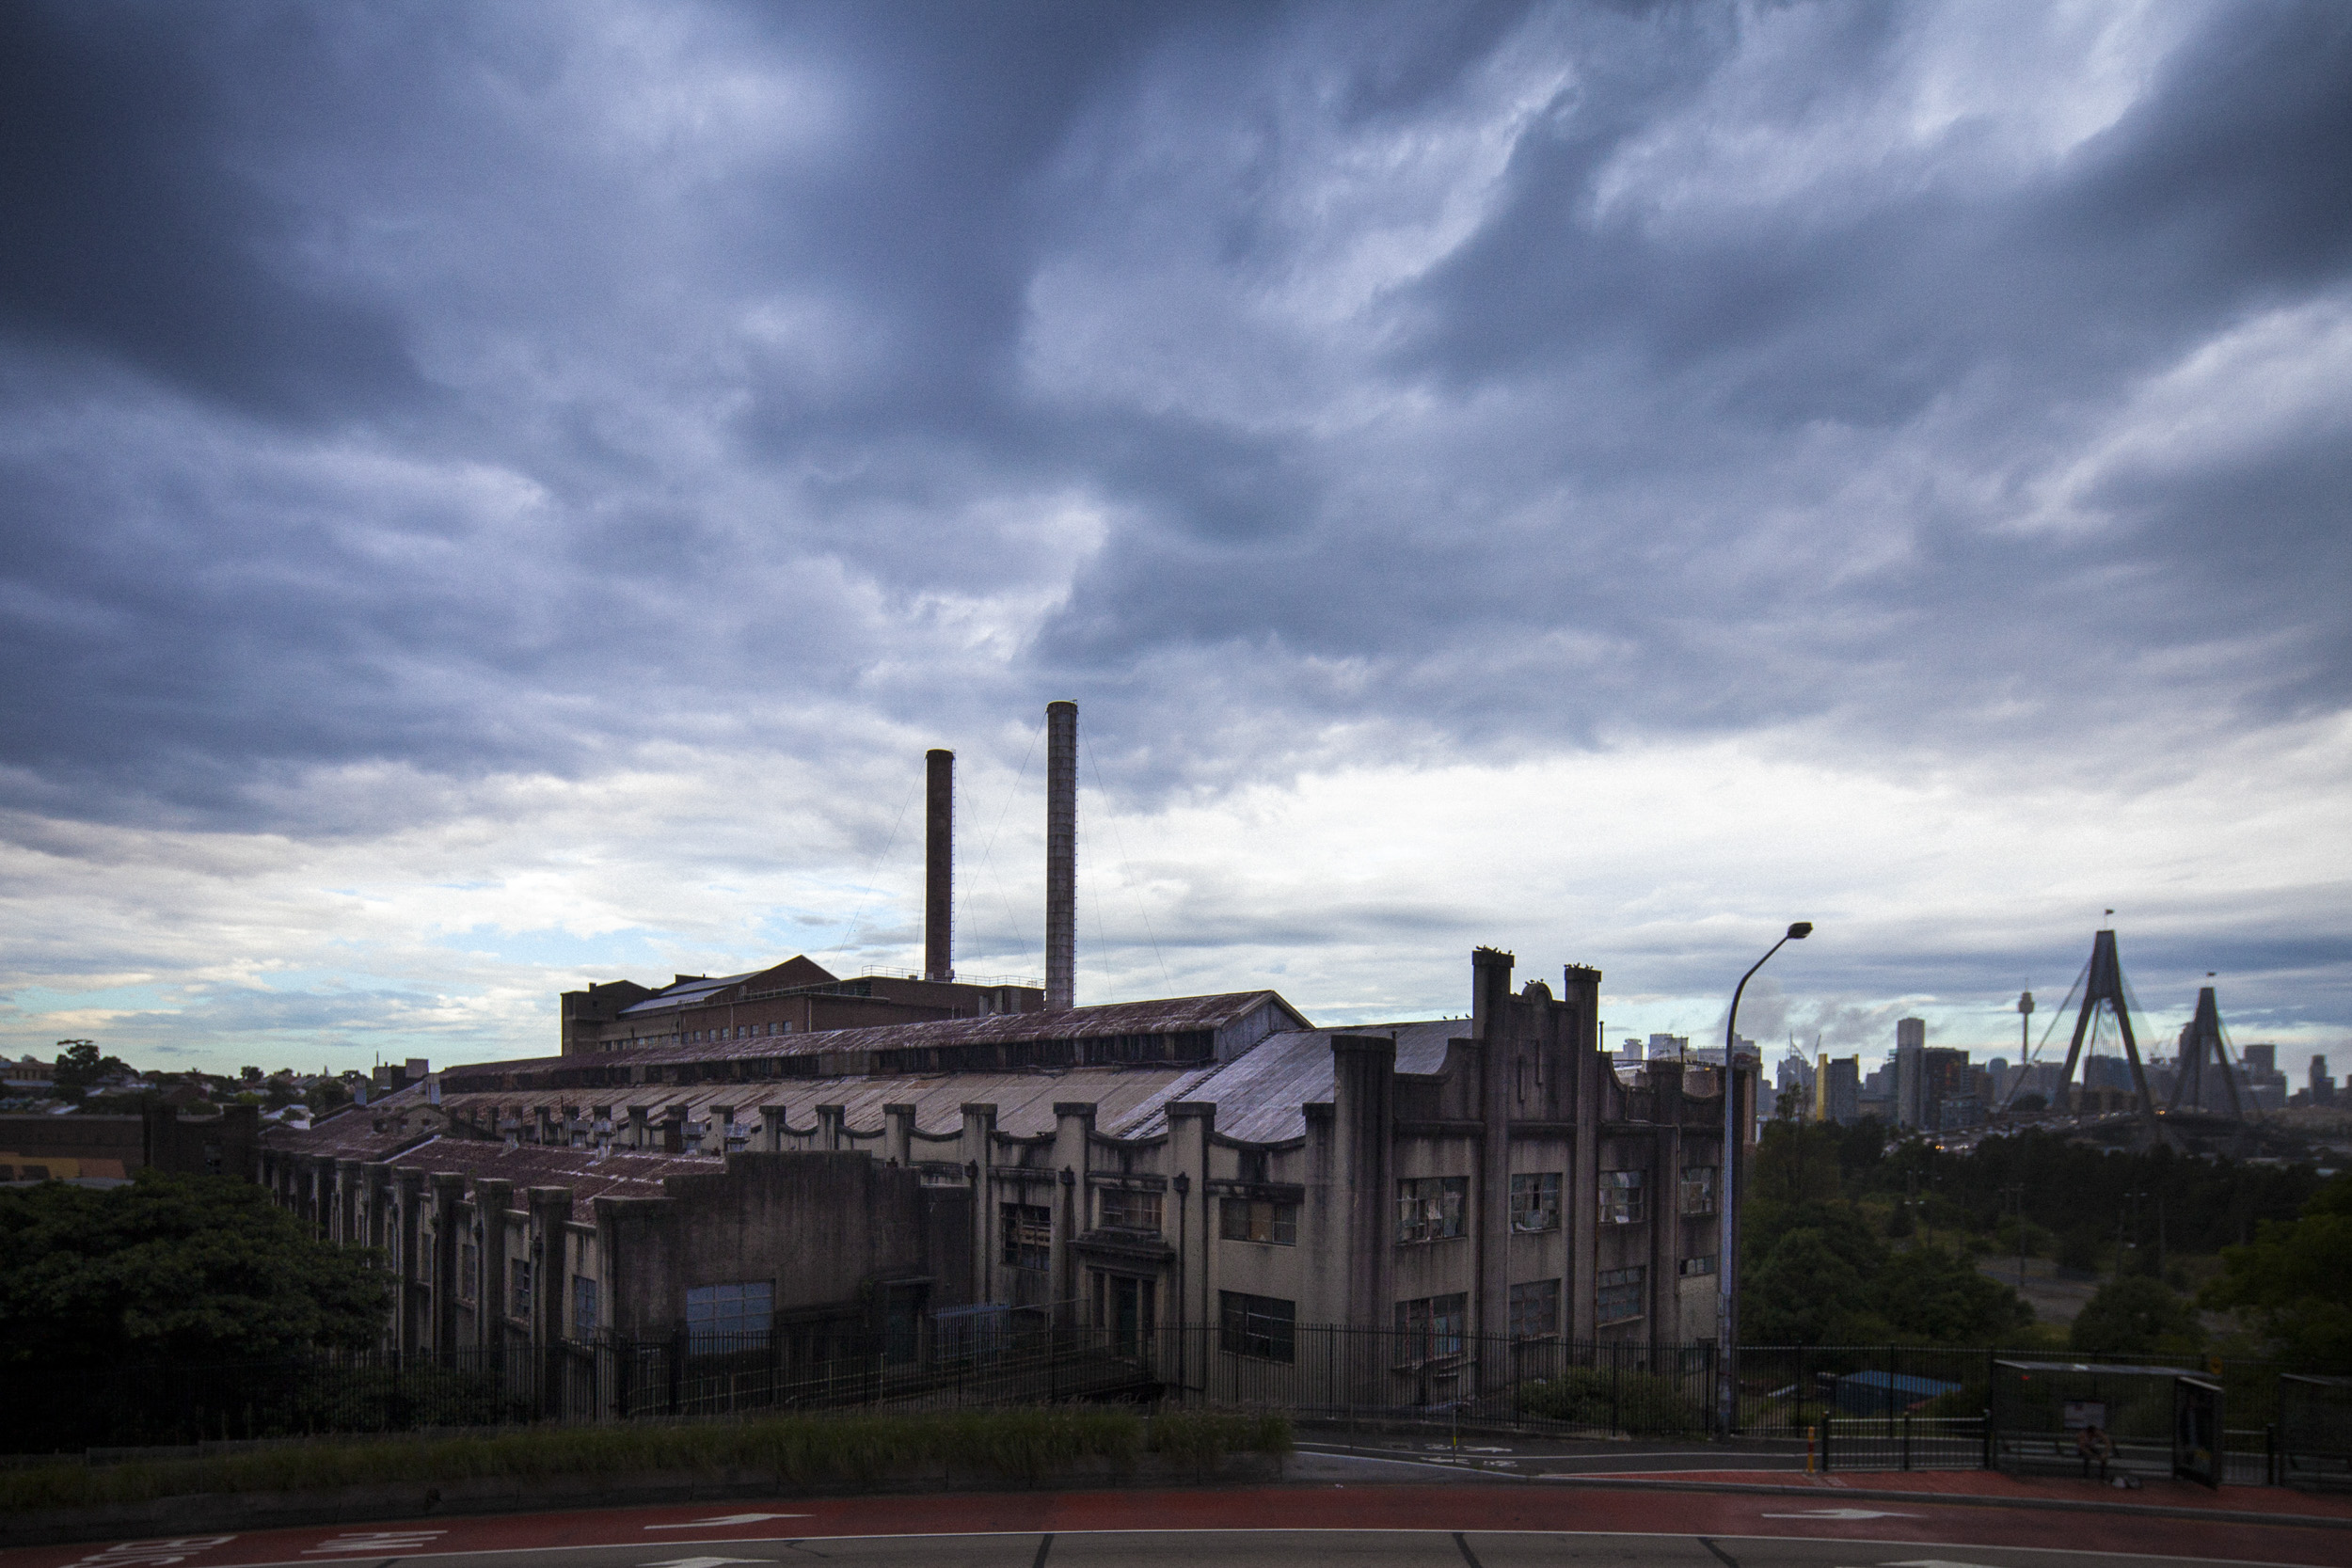 mackintosh_photography_industrial_architecture_05.jpg